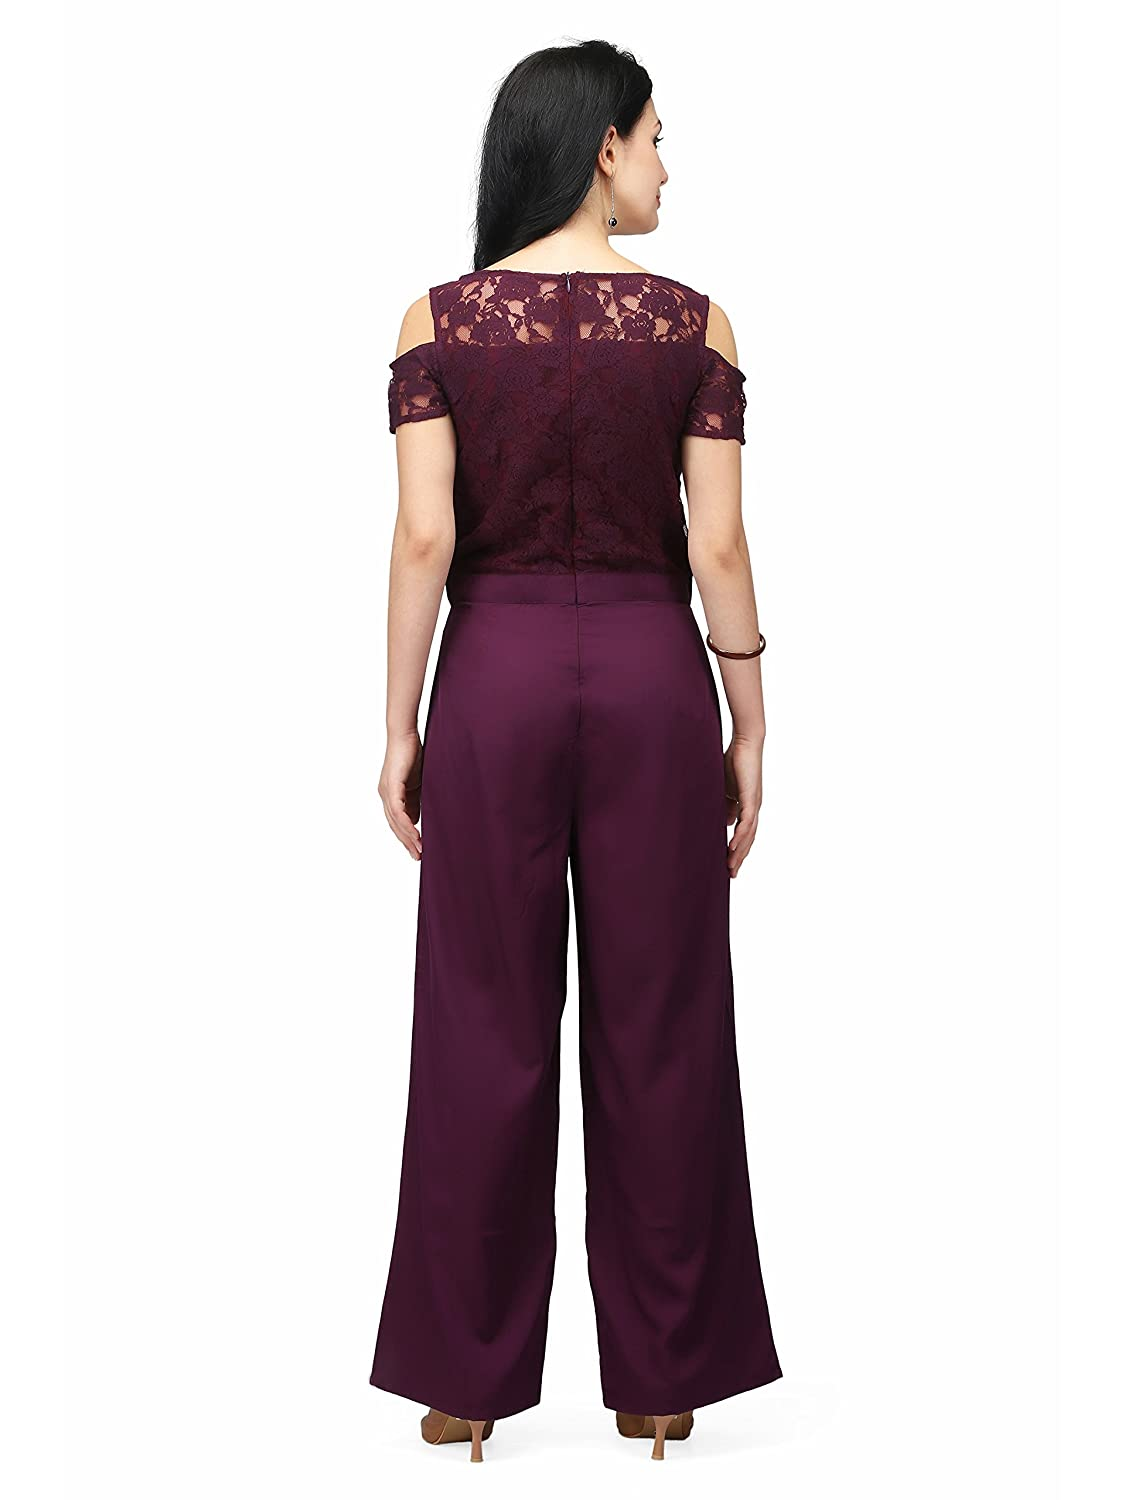 2e99f866d57 Eavan Women s Polyester A-Line Lace Jumpsuit Burgundy  Amazon.in  Clothing    Accessories